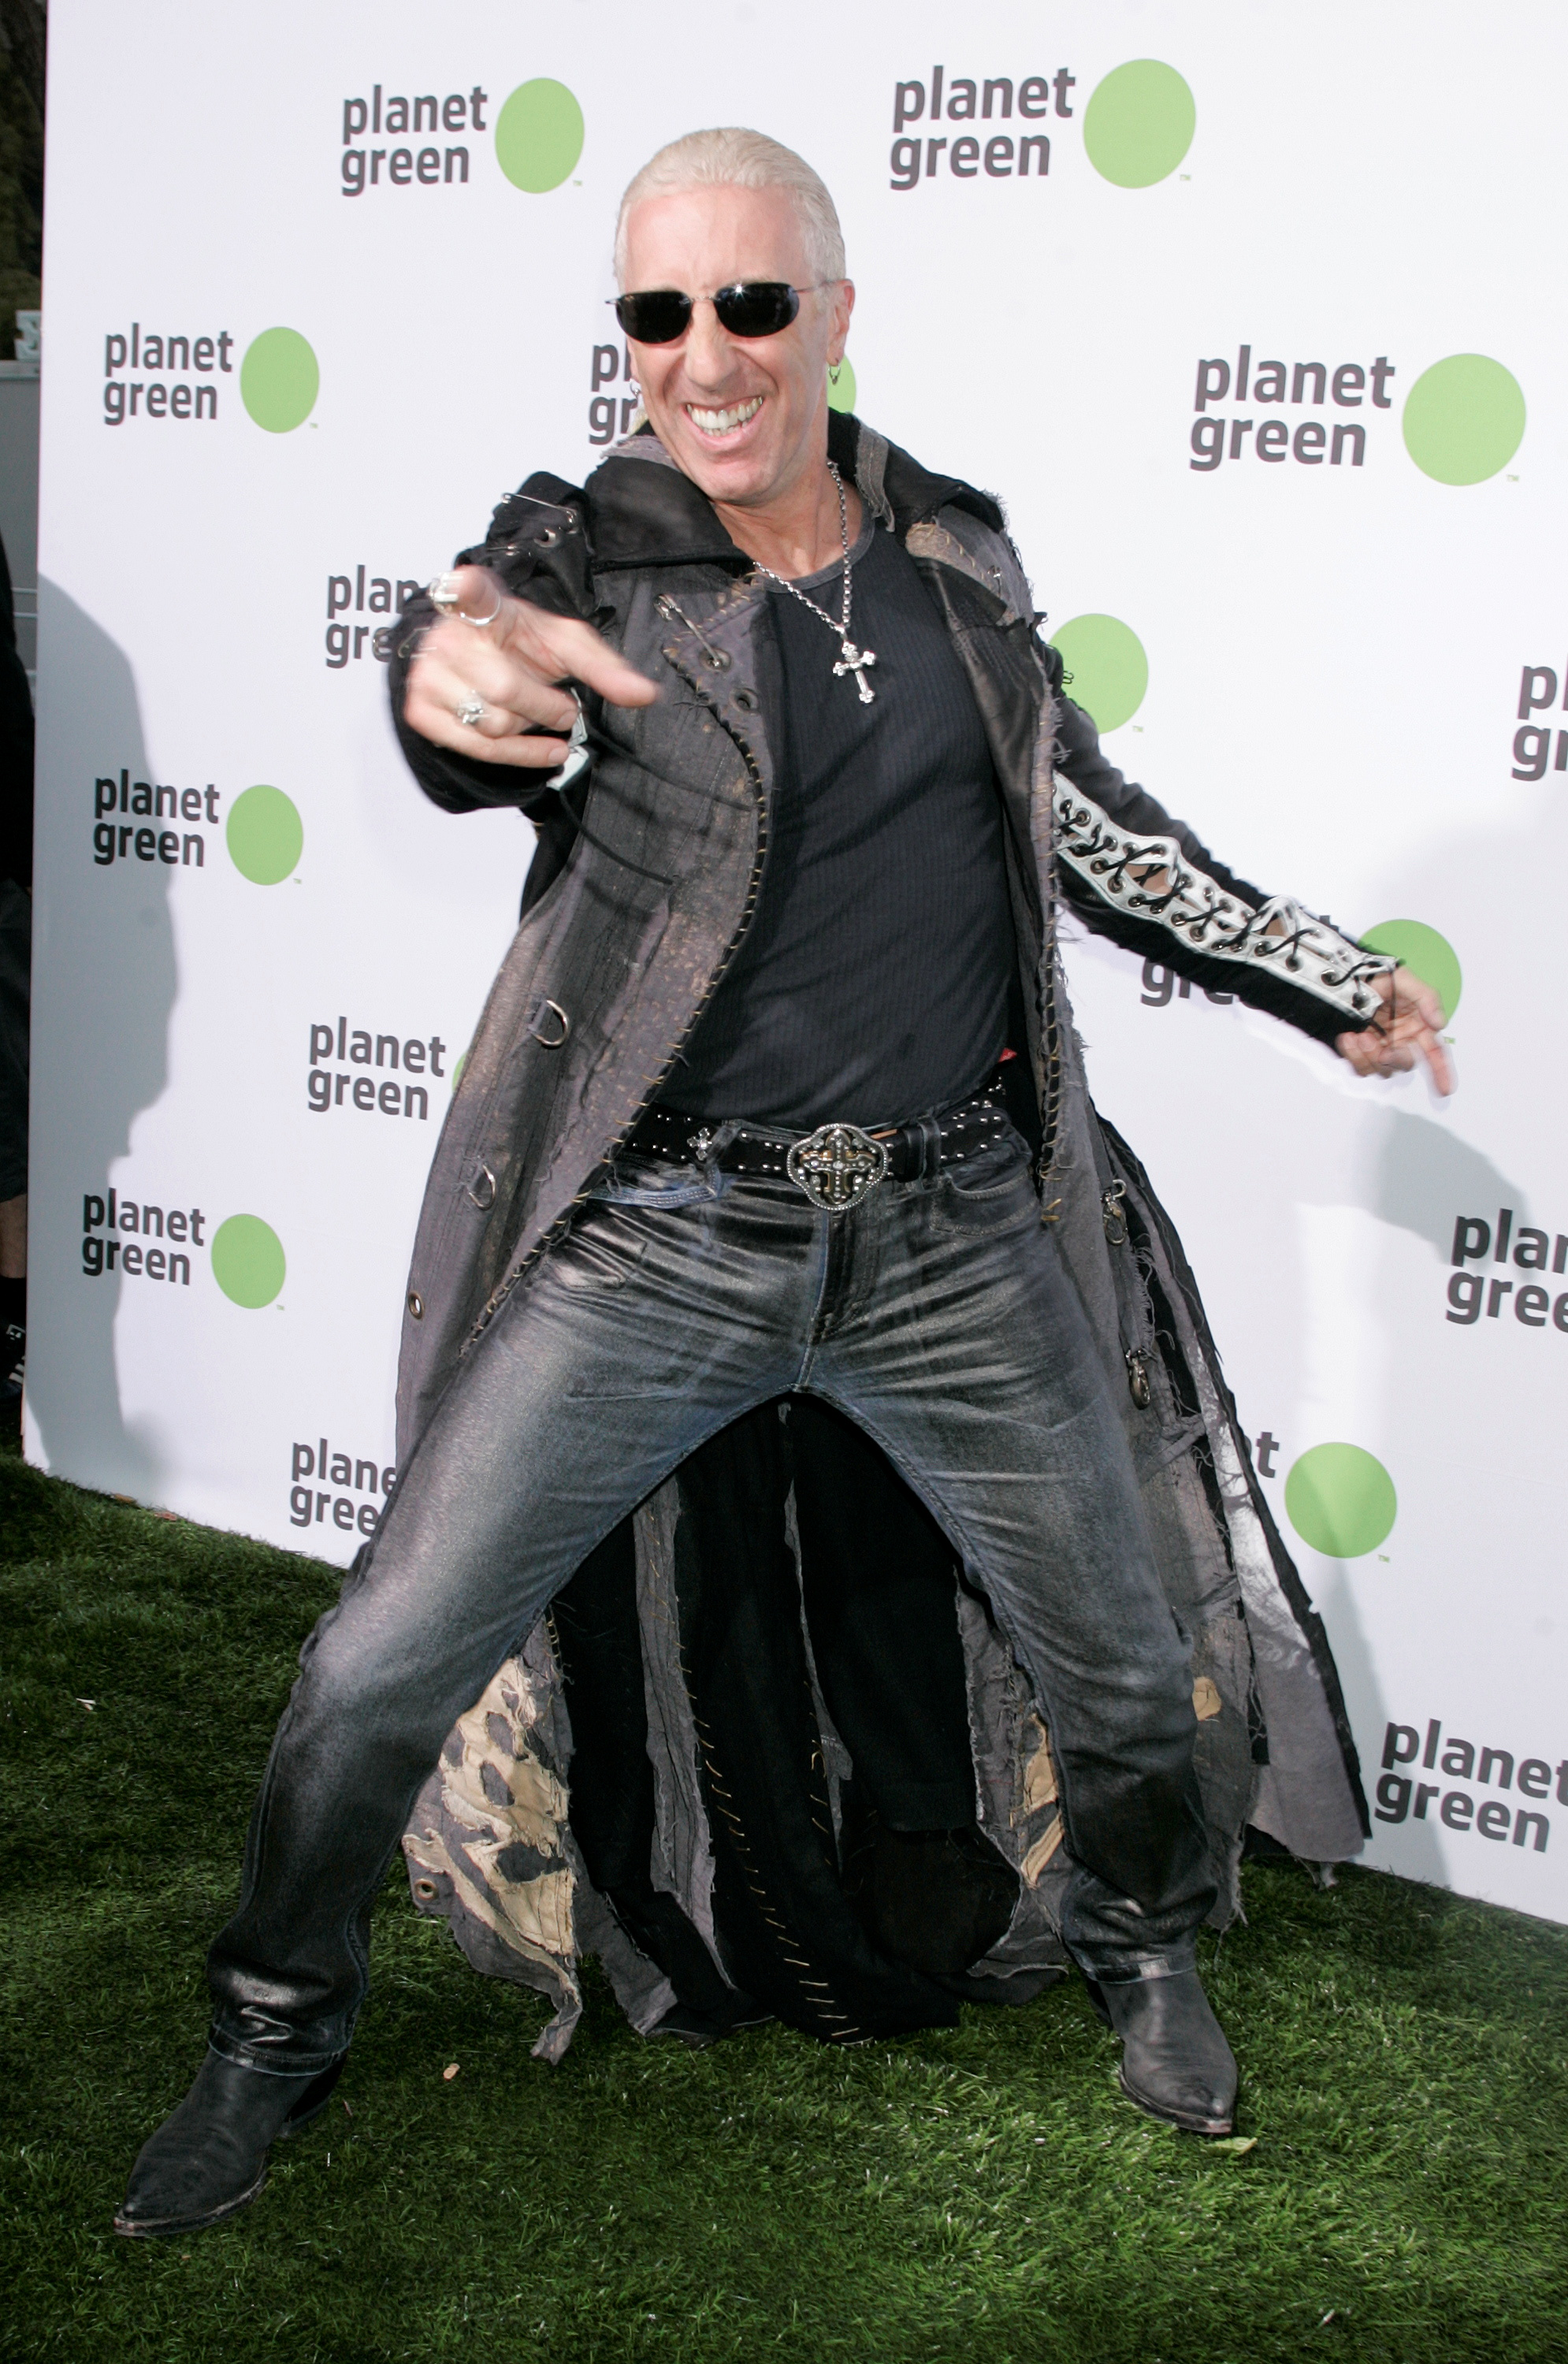 Rock musician Dee Snider, best known for his role as the frontman of American hard rock band Twisted Sister, poses in Los Angeles, May 28, 2008. REUTERS/Fred Prouser